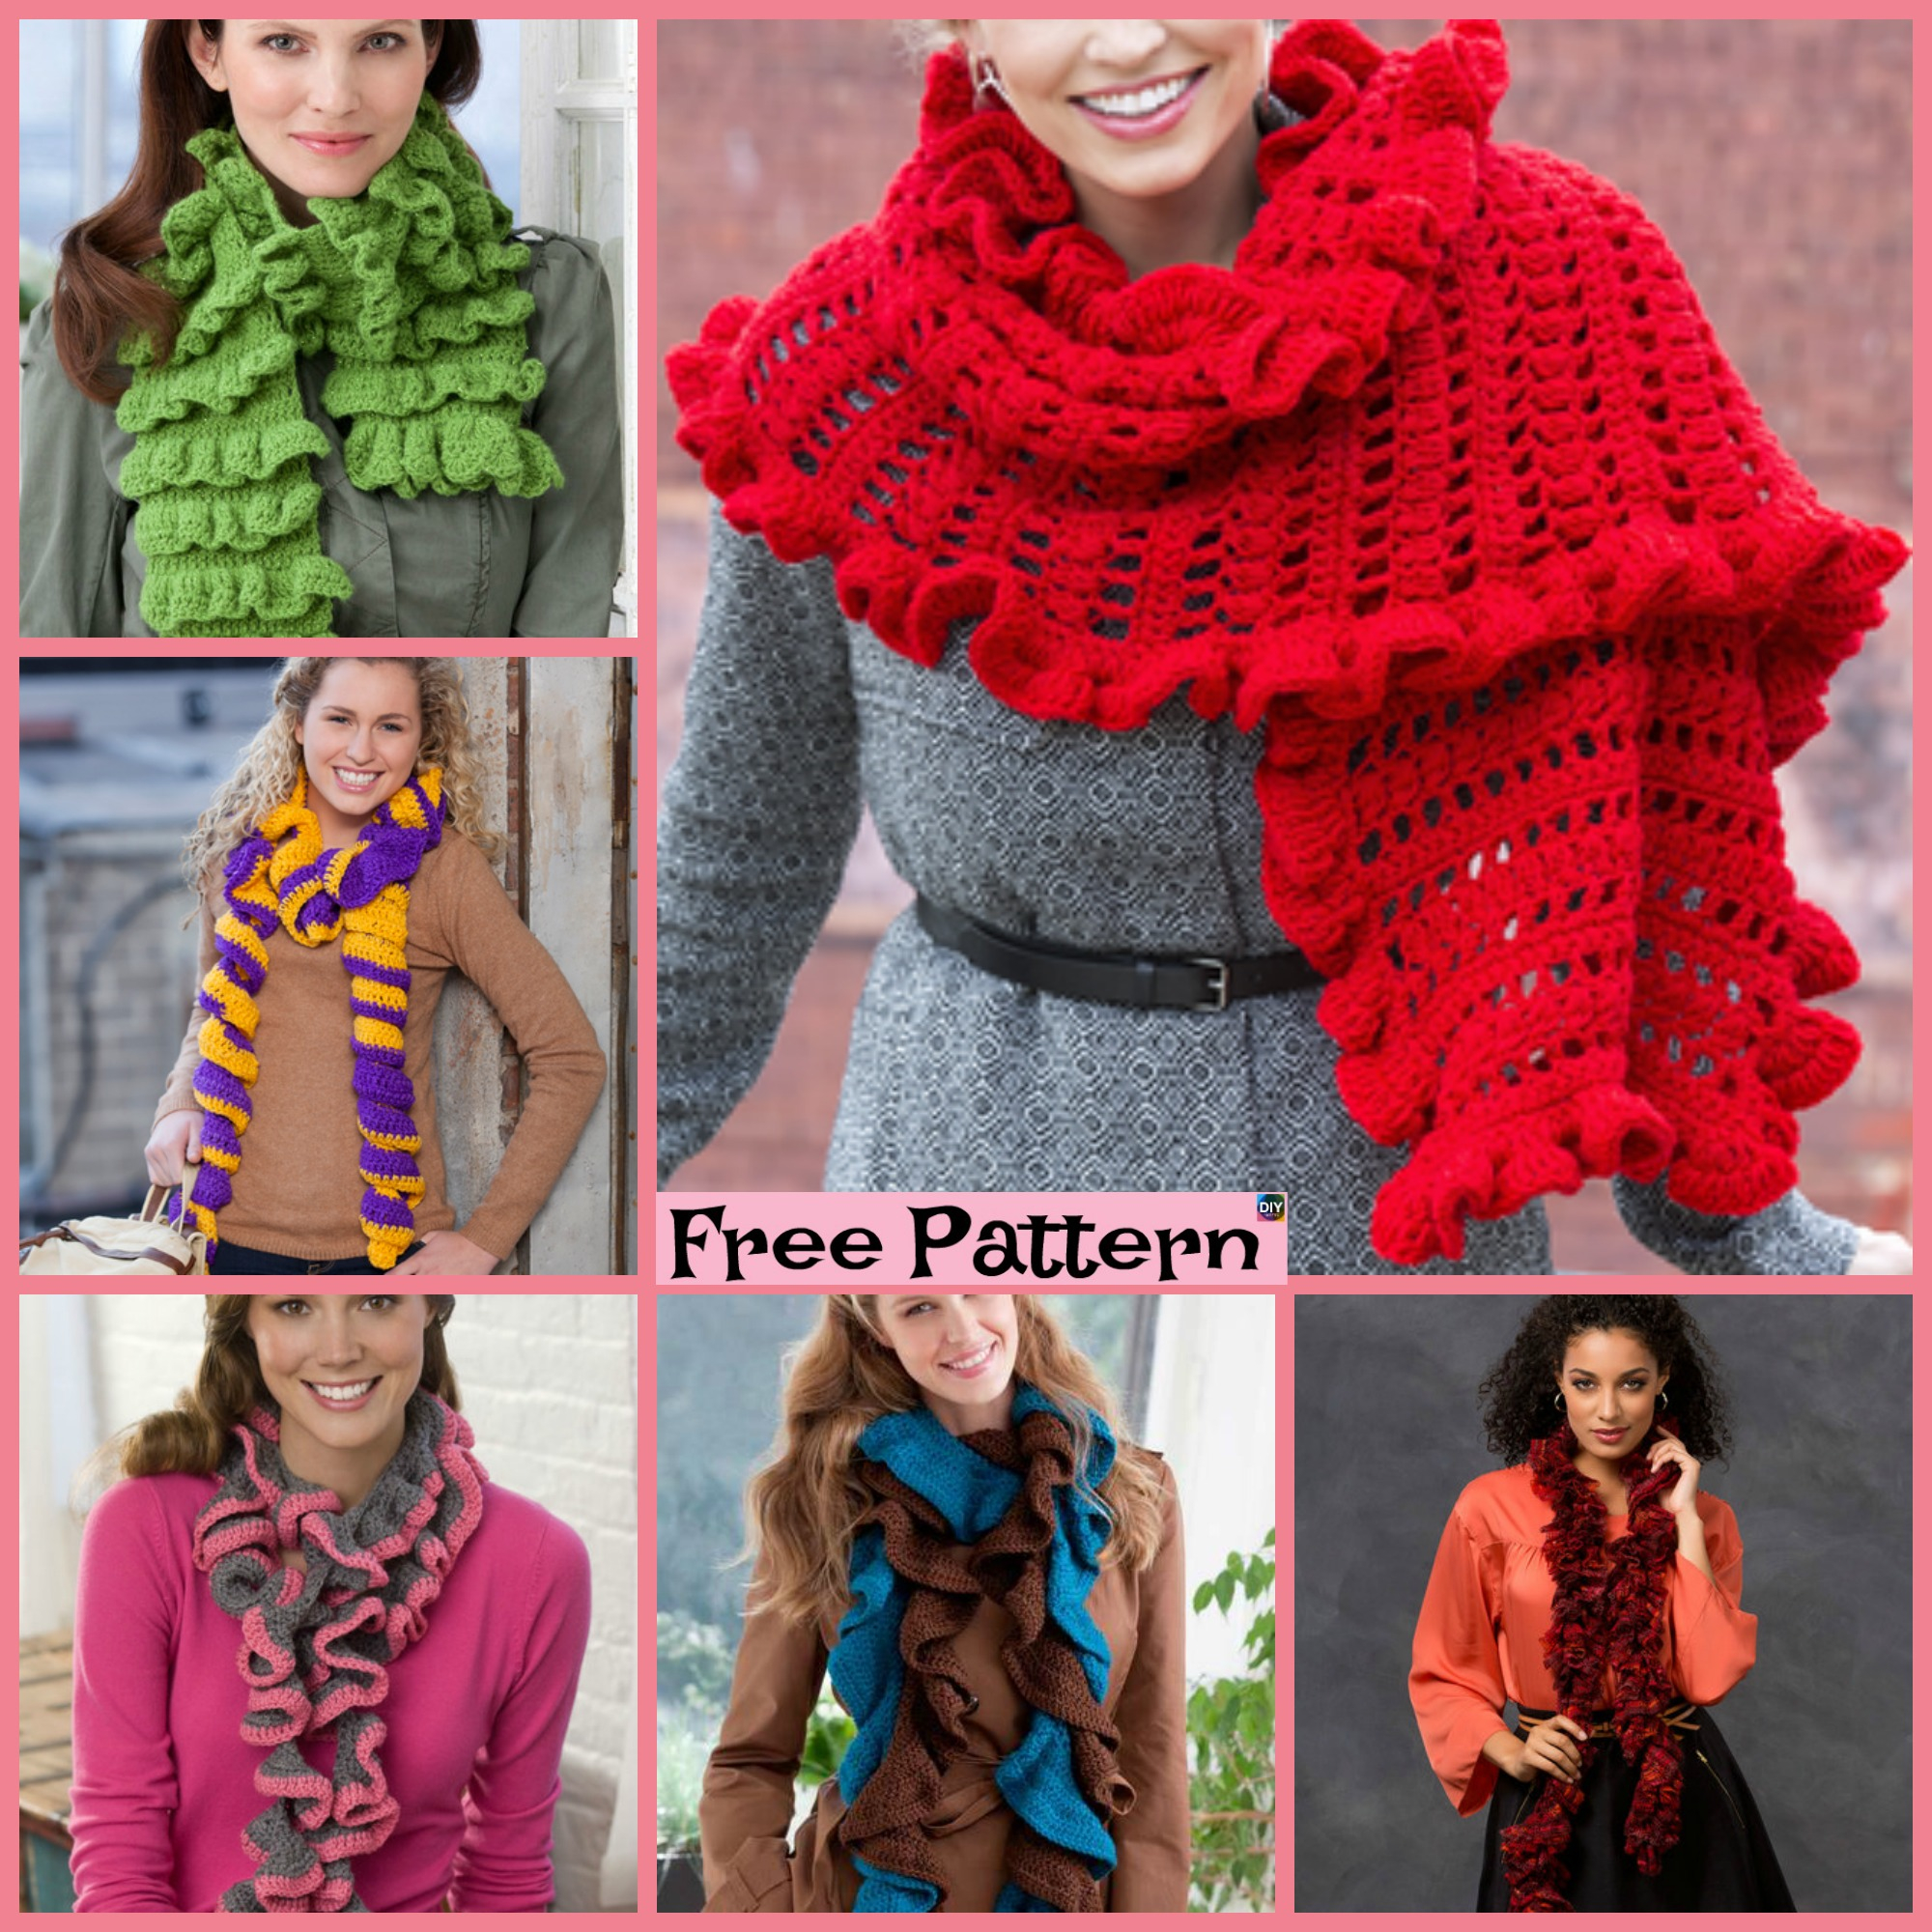 How To Knit A Ruffle Scarf Free Pattern 6 Beautiful Crochet Ruffled Scarf Free Patterns Diy 4 Ever